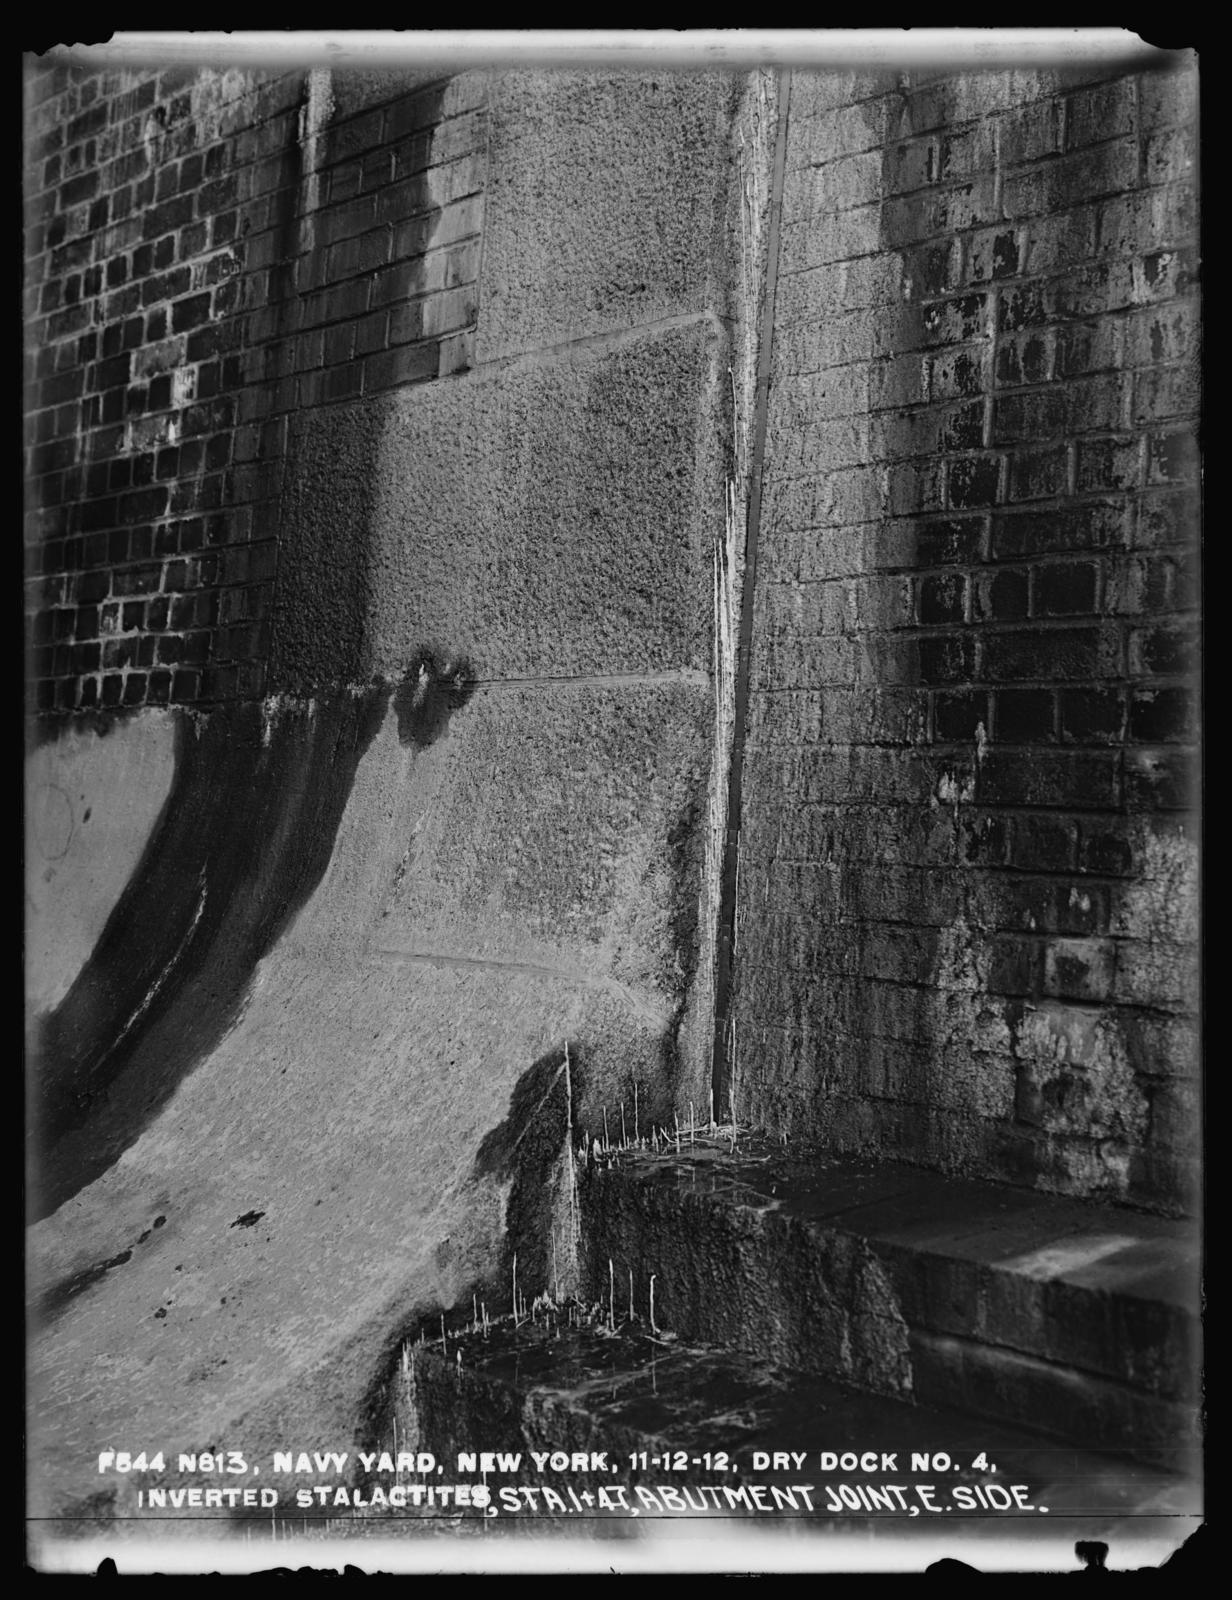 Dry Dock No. 4, Inverted Stalactites, Stations 1+47, Abutment Joint, East Side